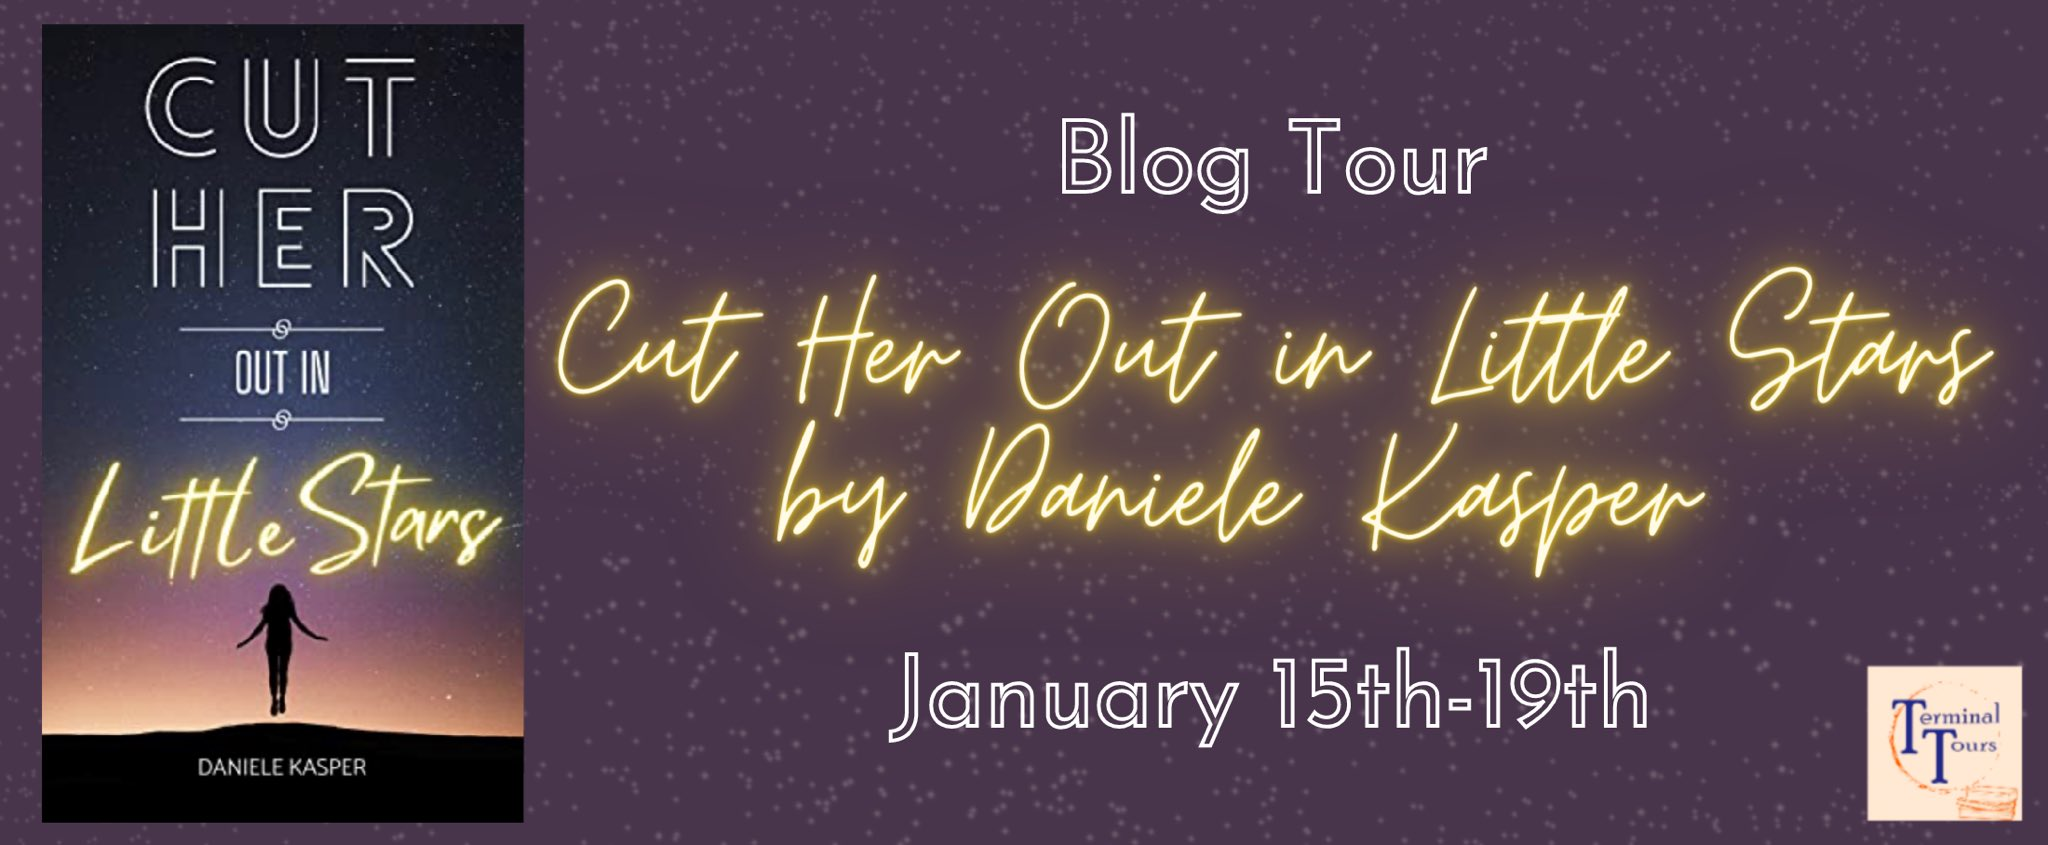 Blog Tour: Cut Her Out in Little Stars by Daniele Kasper (Interview + Giveaway!)